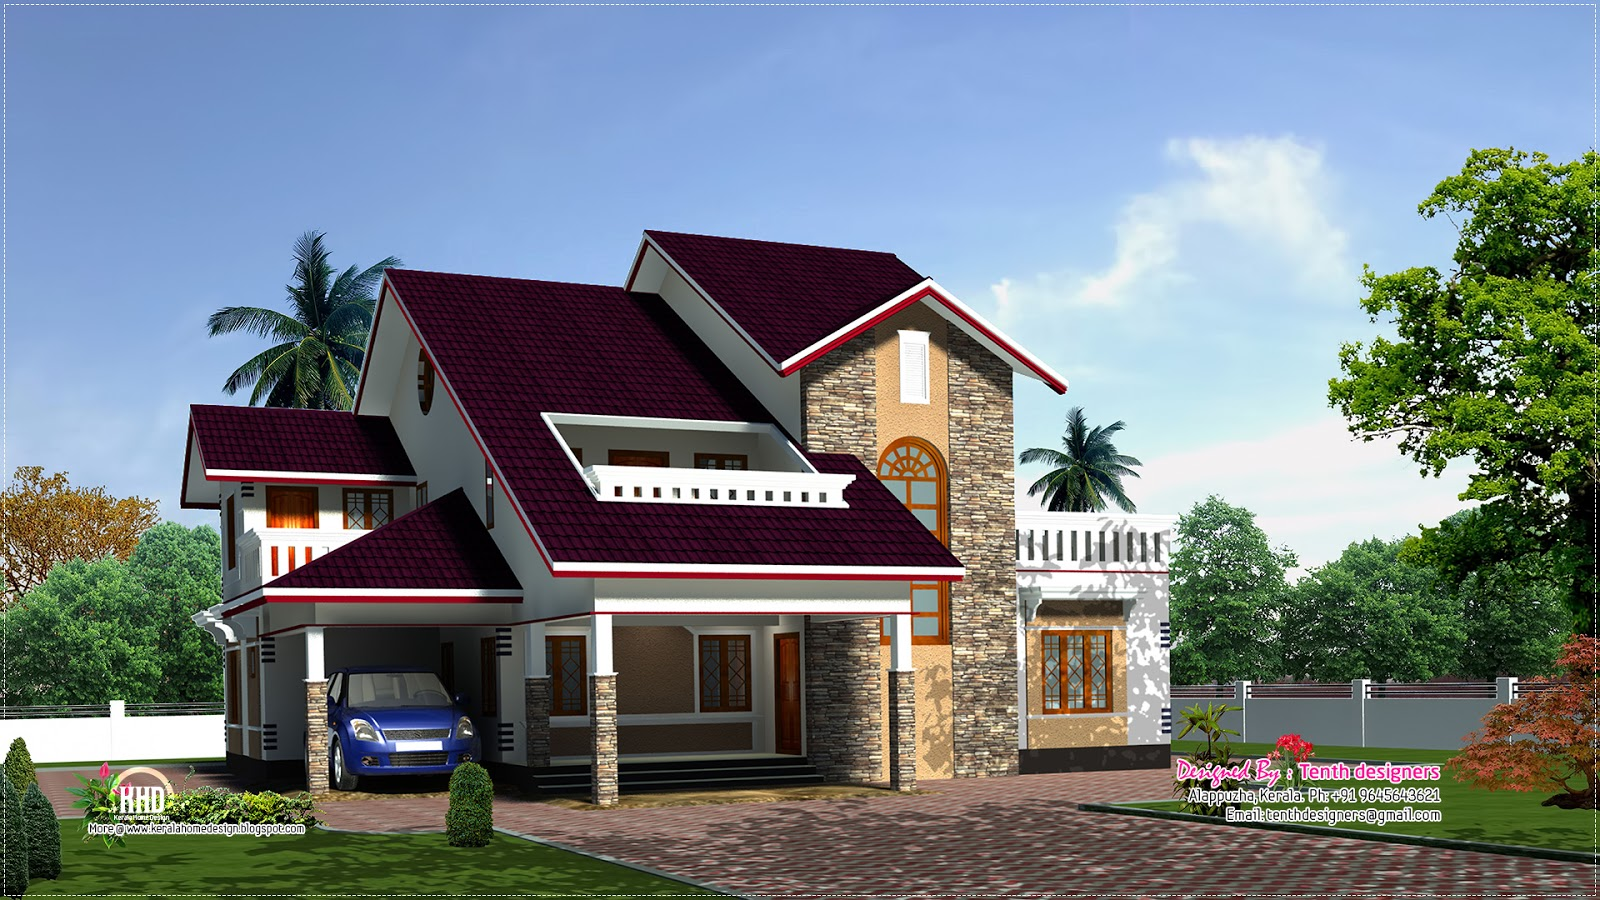 3200 luxury house plan elevation house design plans for Luxury house plans online